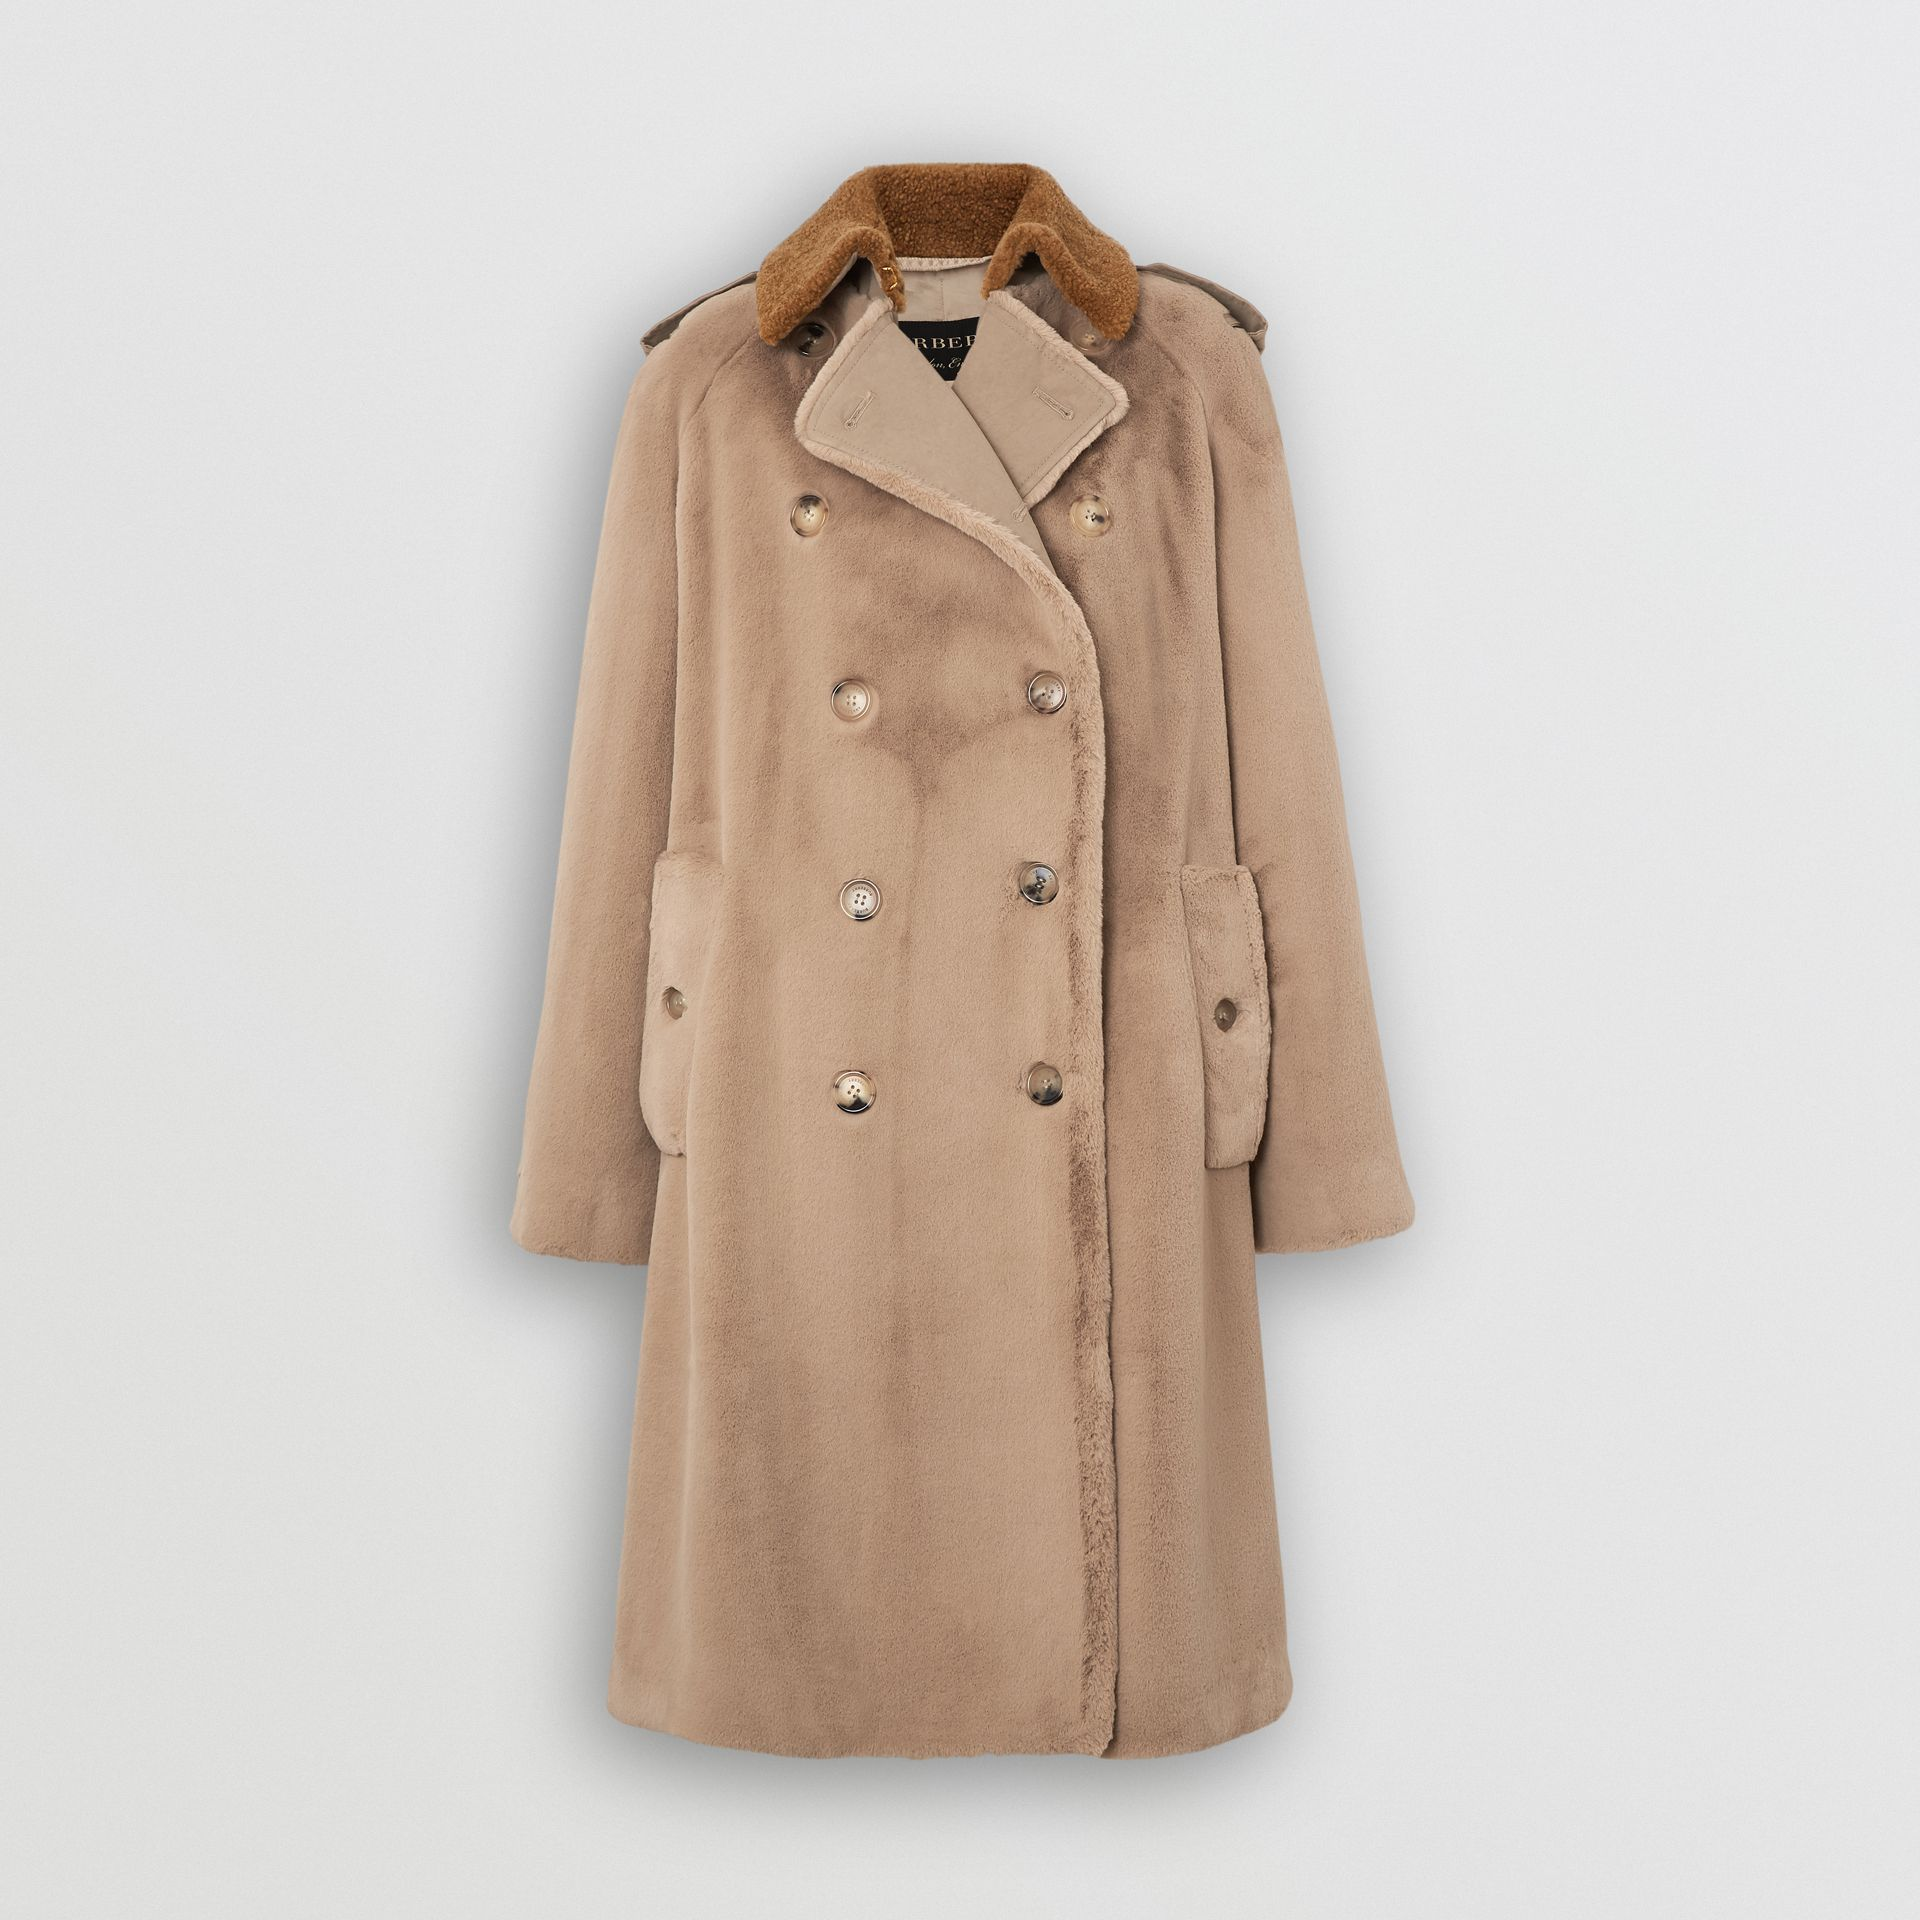 Shearling Trim Faux Fur Trench Coat in Taupe - Women | Burberry Australia - gallery image 3